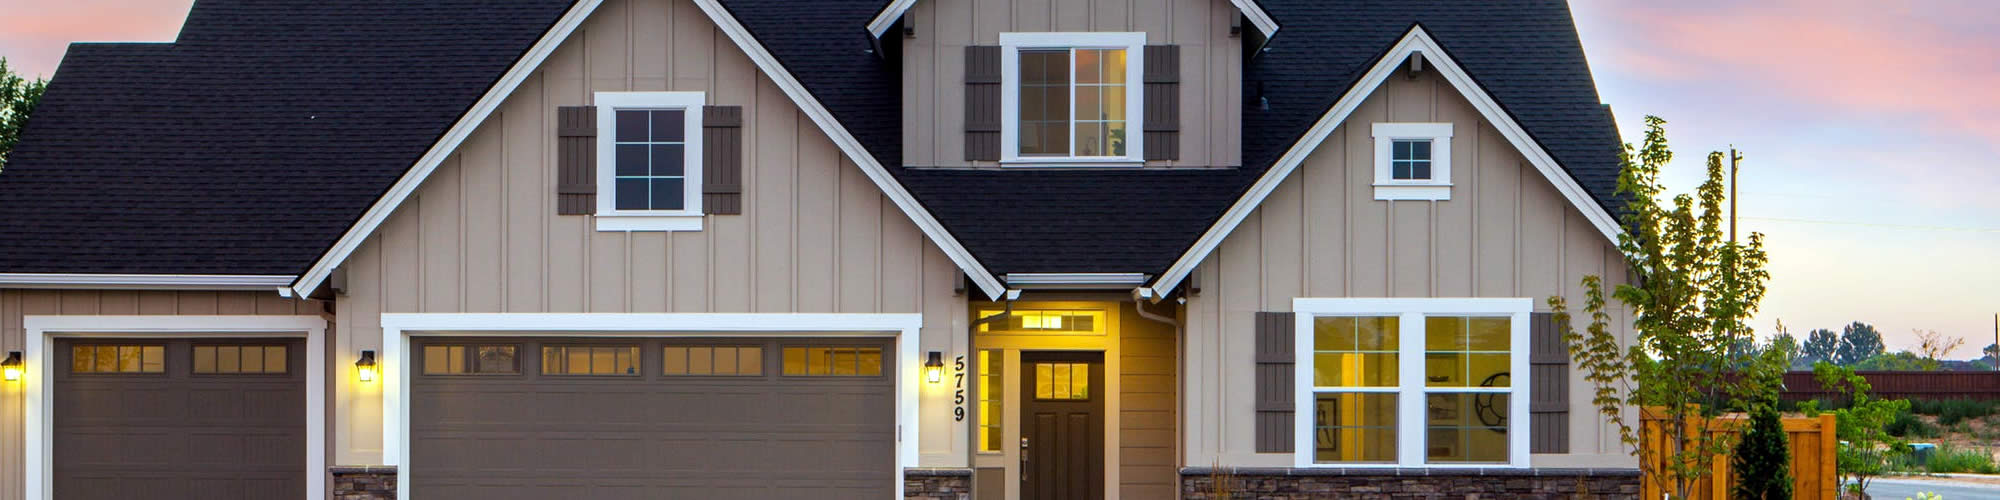 Home Siding Installation Services Roofing Contractor near me